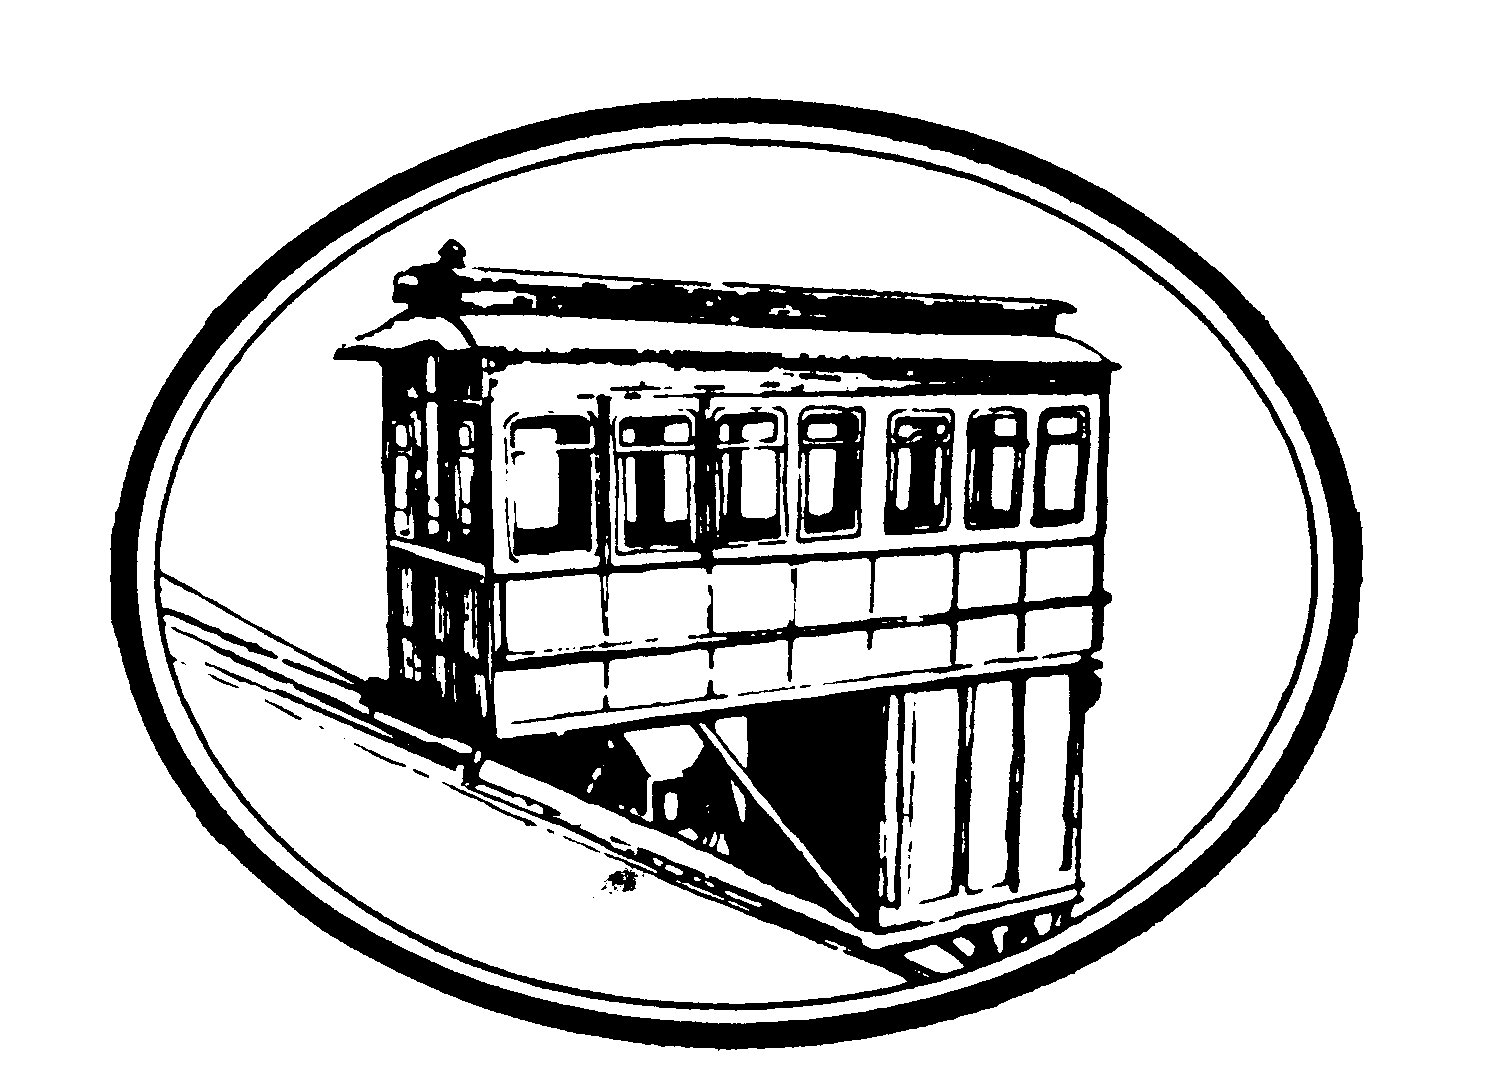 Official Site Of The Duquesne Incline